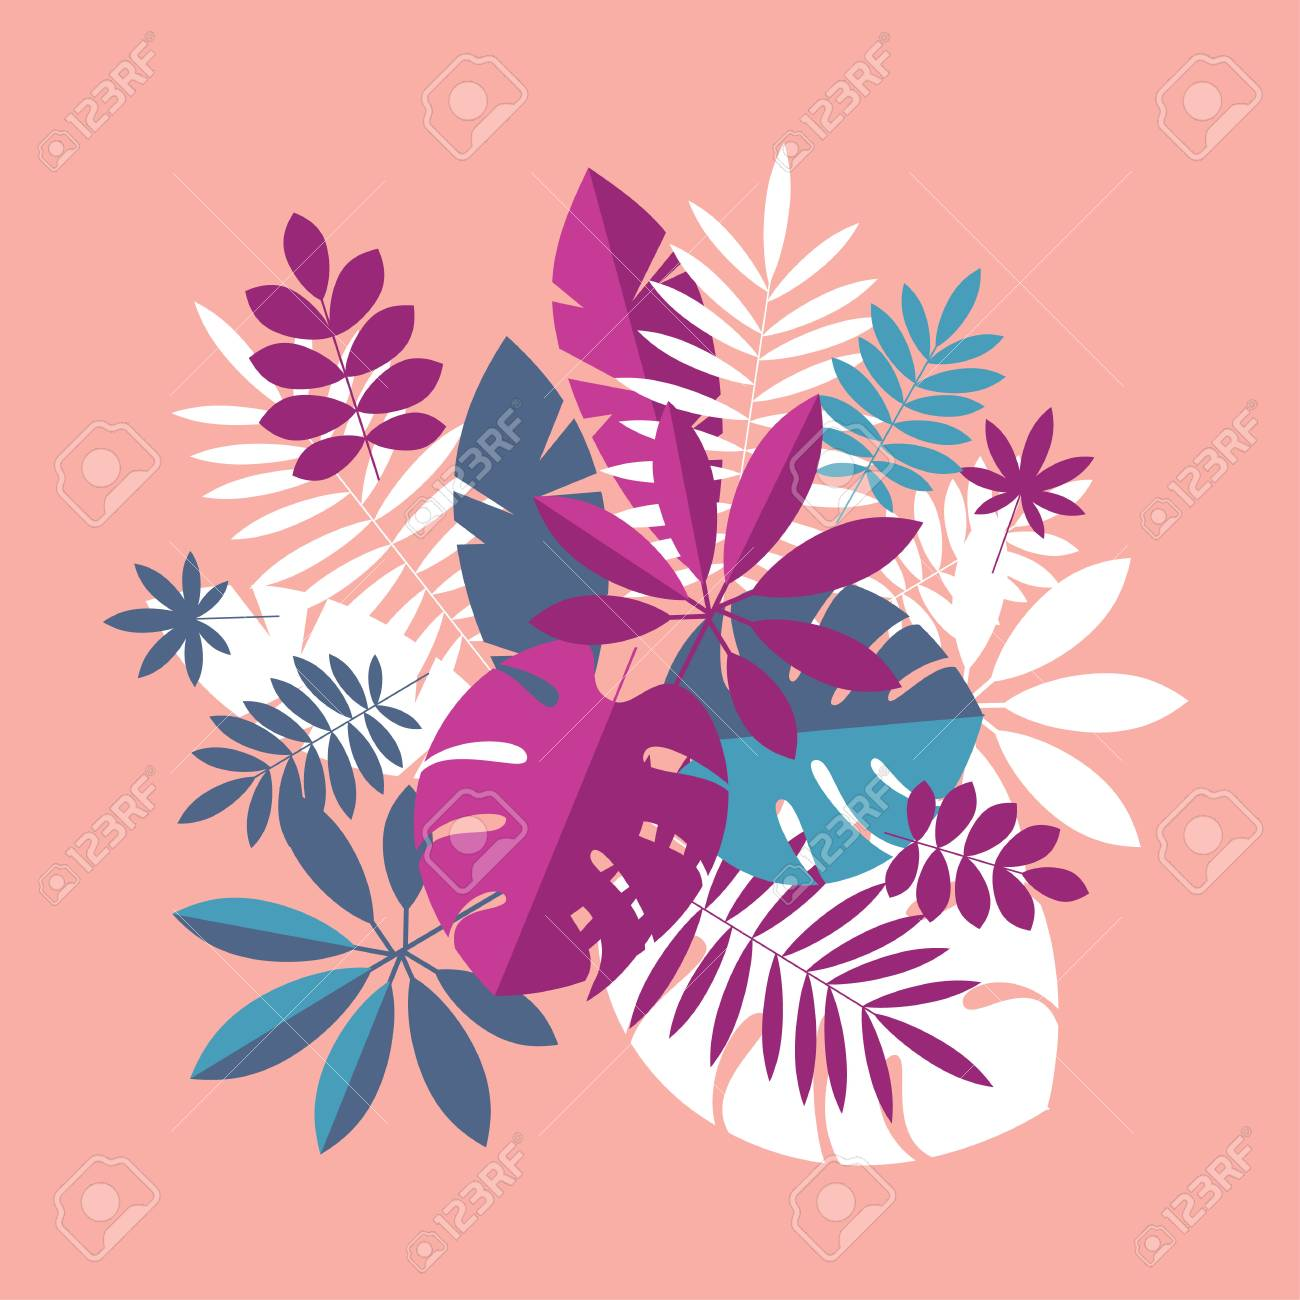 Vibrant Bright Simple Tropical Leaves Design Element For Header Royalty Free Cliparts Vectors And Stock Illustration Image 103501669 Coconut leaves green leaves tropical plants. vibrant bright simple tropical leaves design element for header